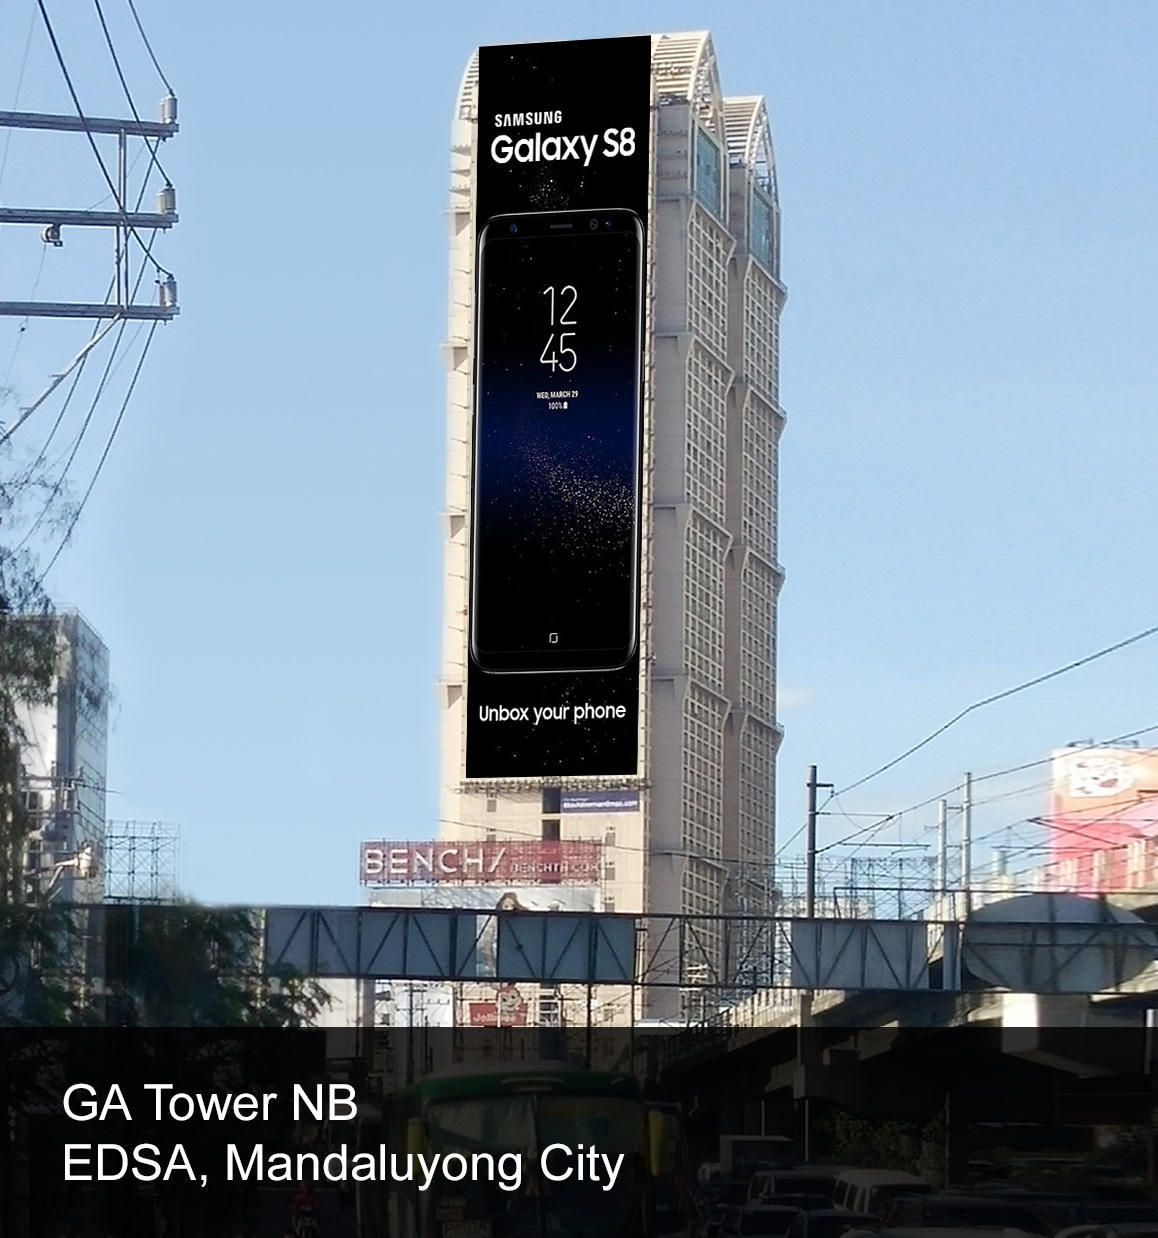 Dooh-ph-ga-tower-led-billboard-in-edsa.jpg